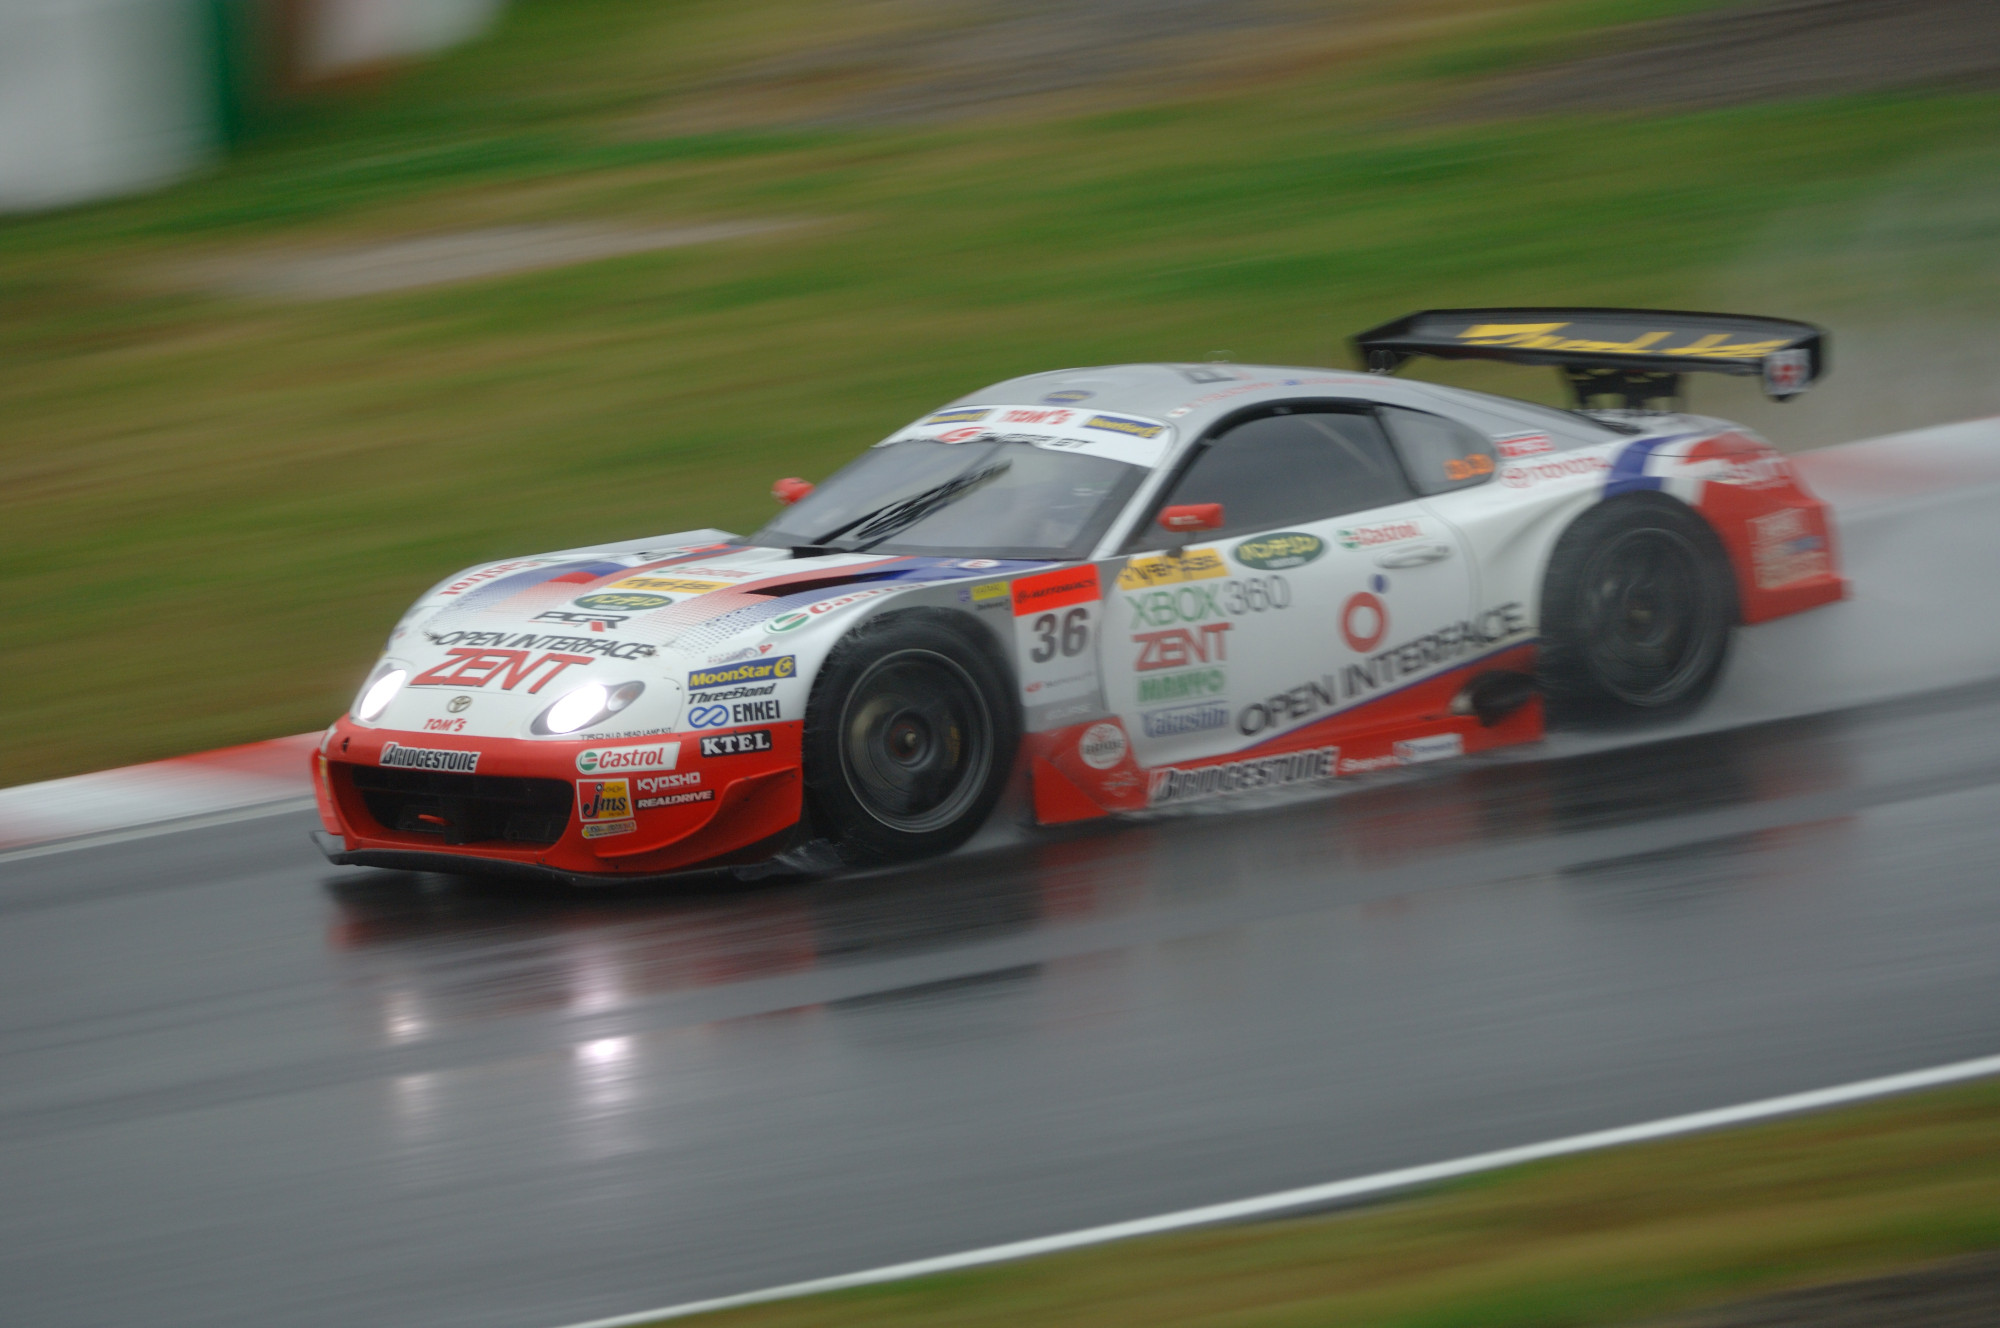 出典:http://inish.cocolog-nifty.com/blog/2005/11/super_gt112.html